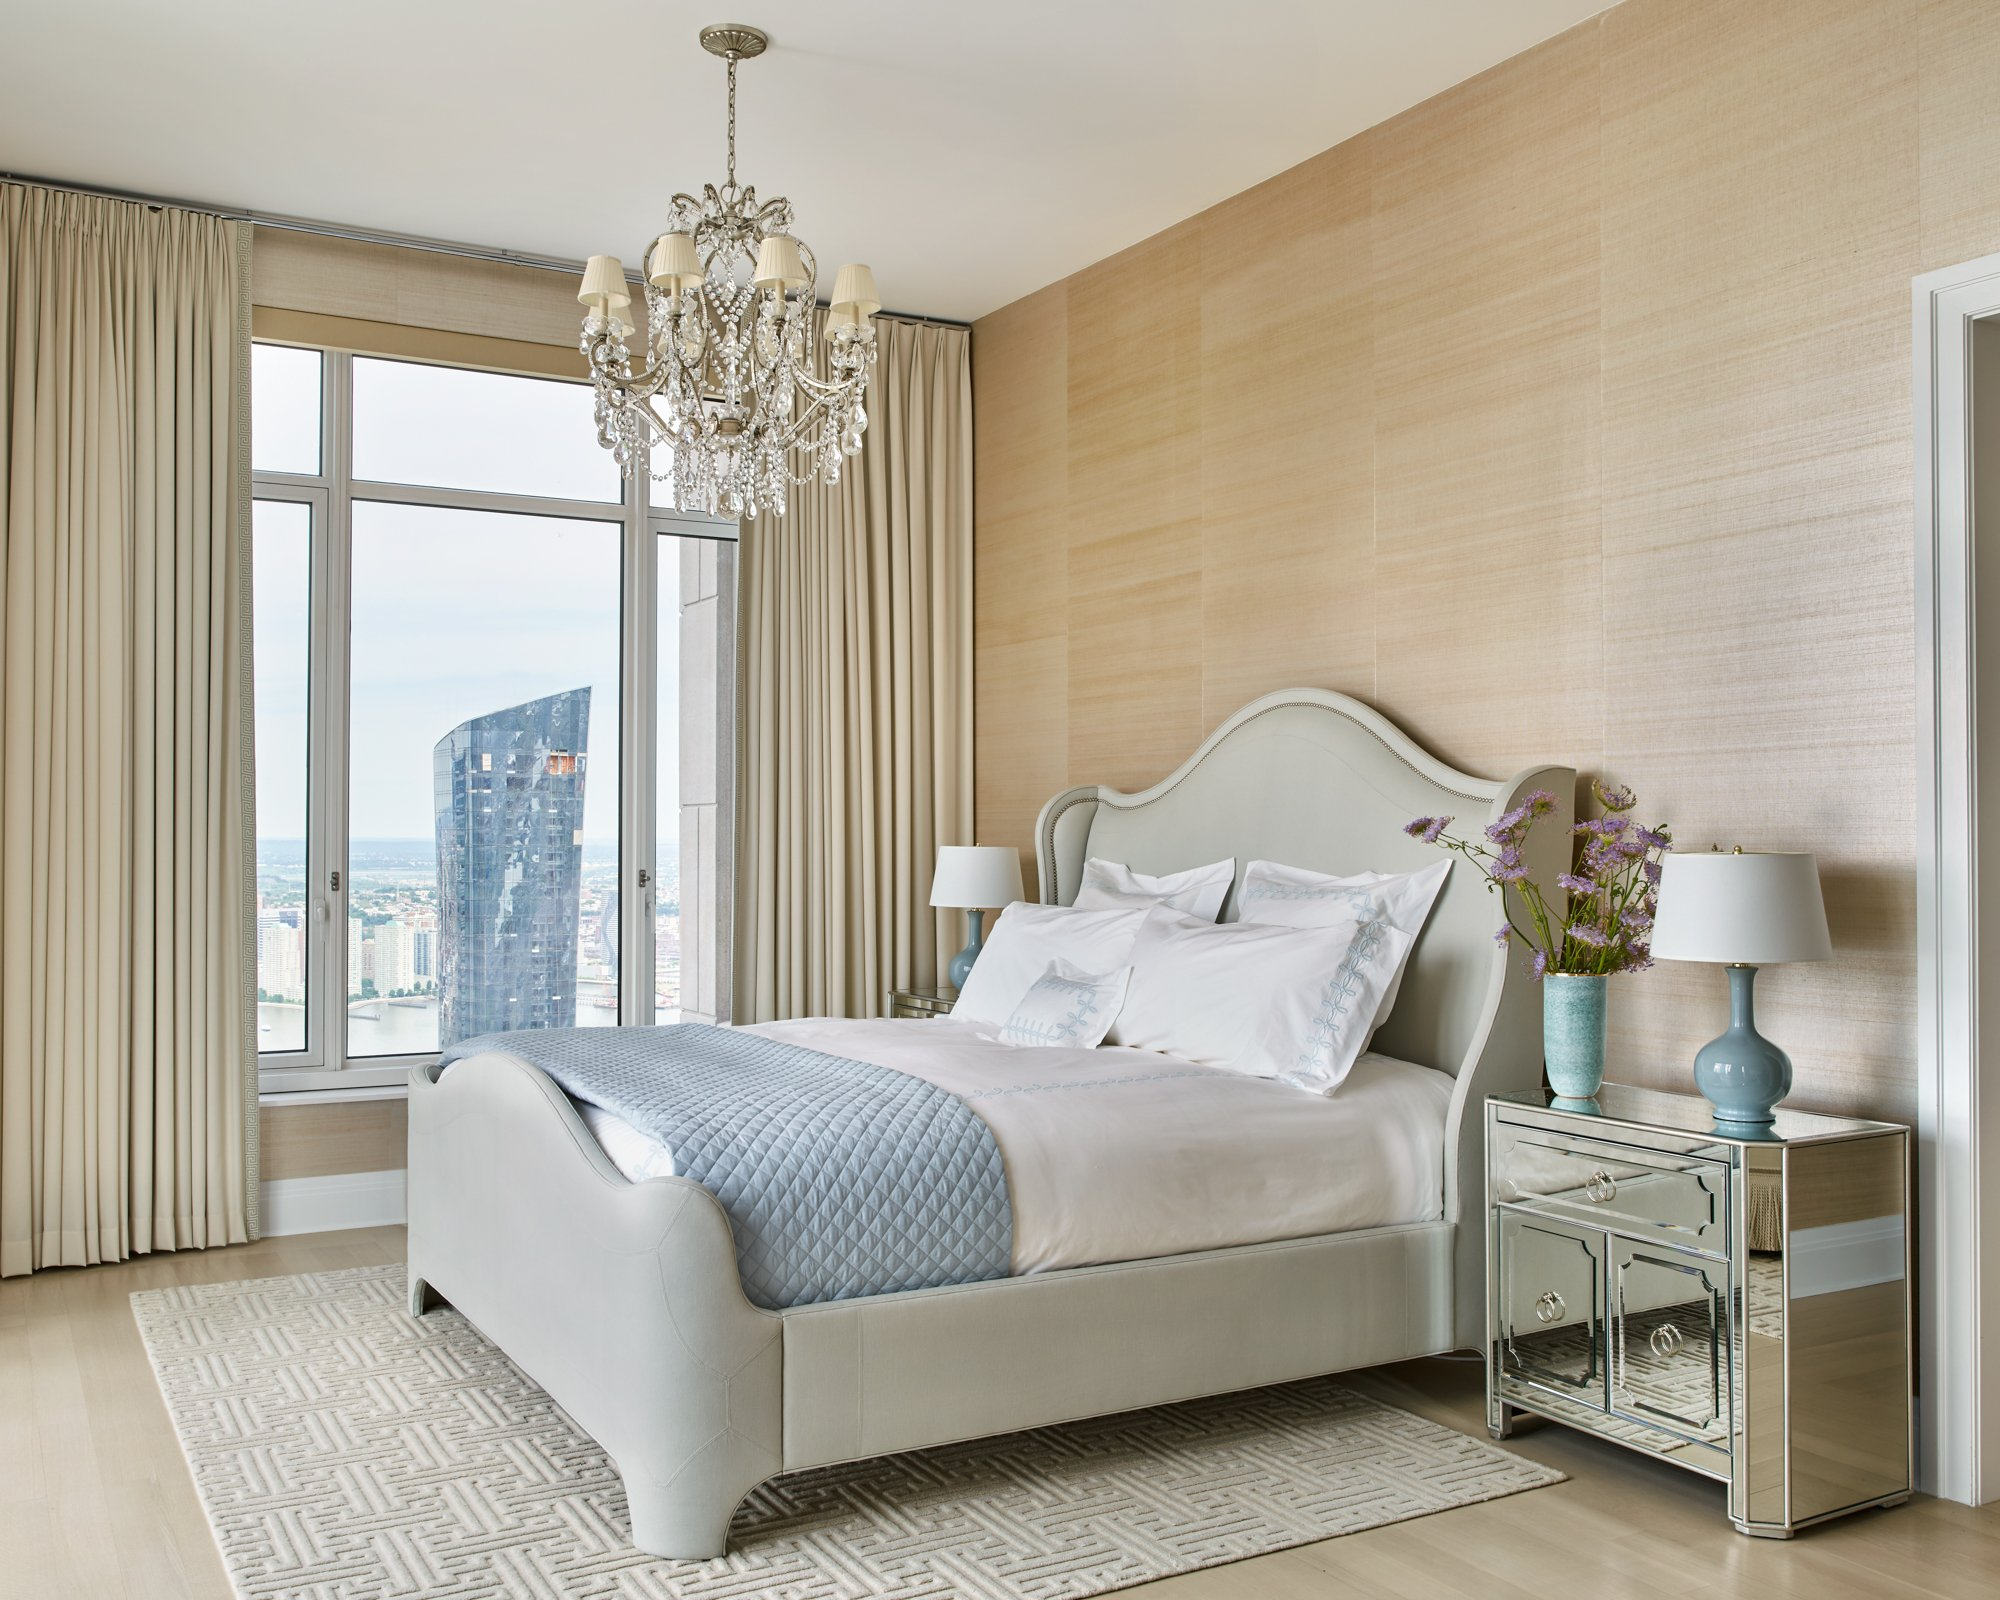 The master bedroom is a study in relaxed elegance. The showstopping Ralph Lauren Home chandelier takes center stage. The Matouk bedding adds subtle color, as do a pair of sky blue lamps.